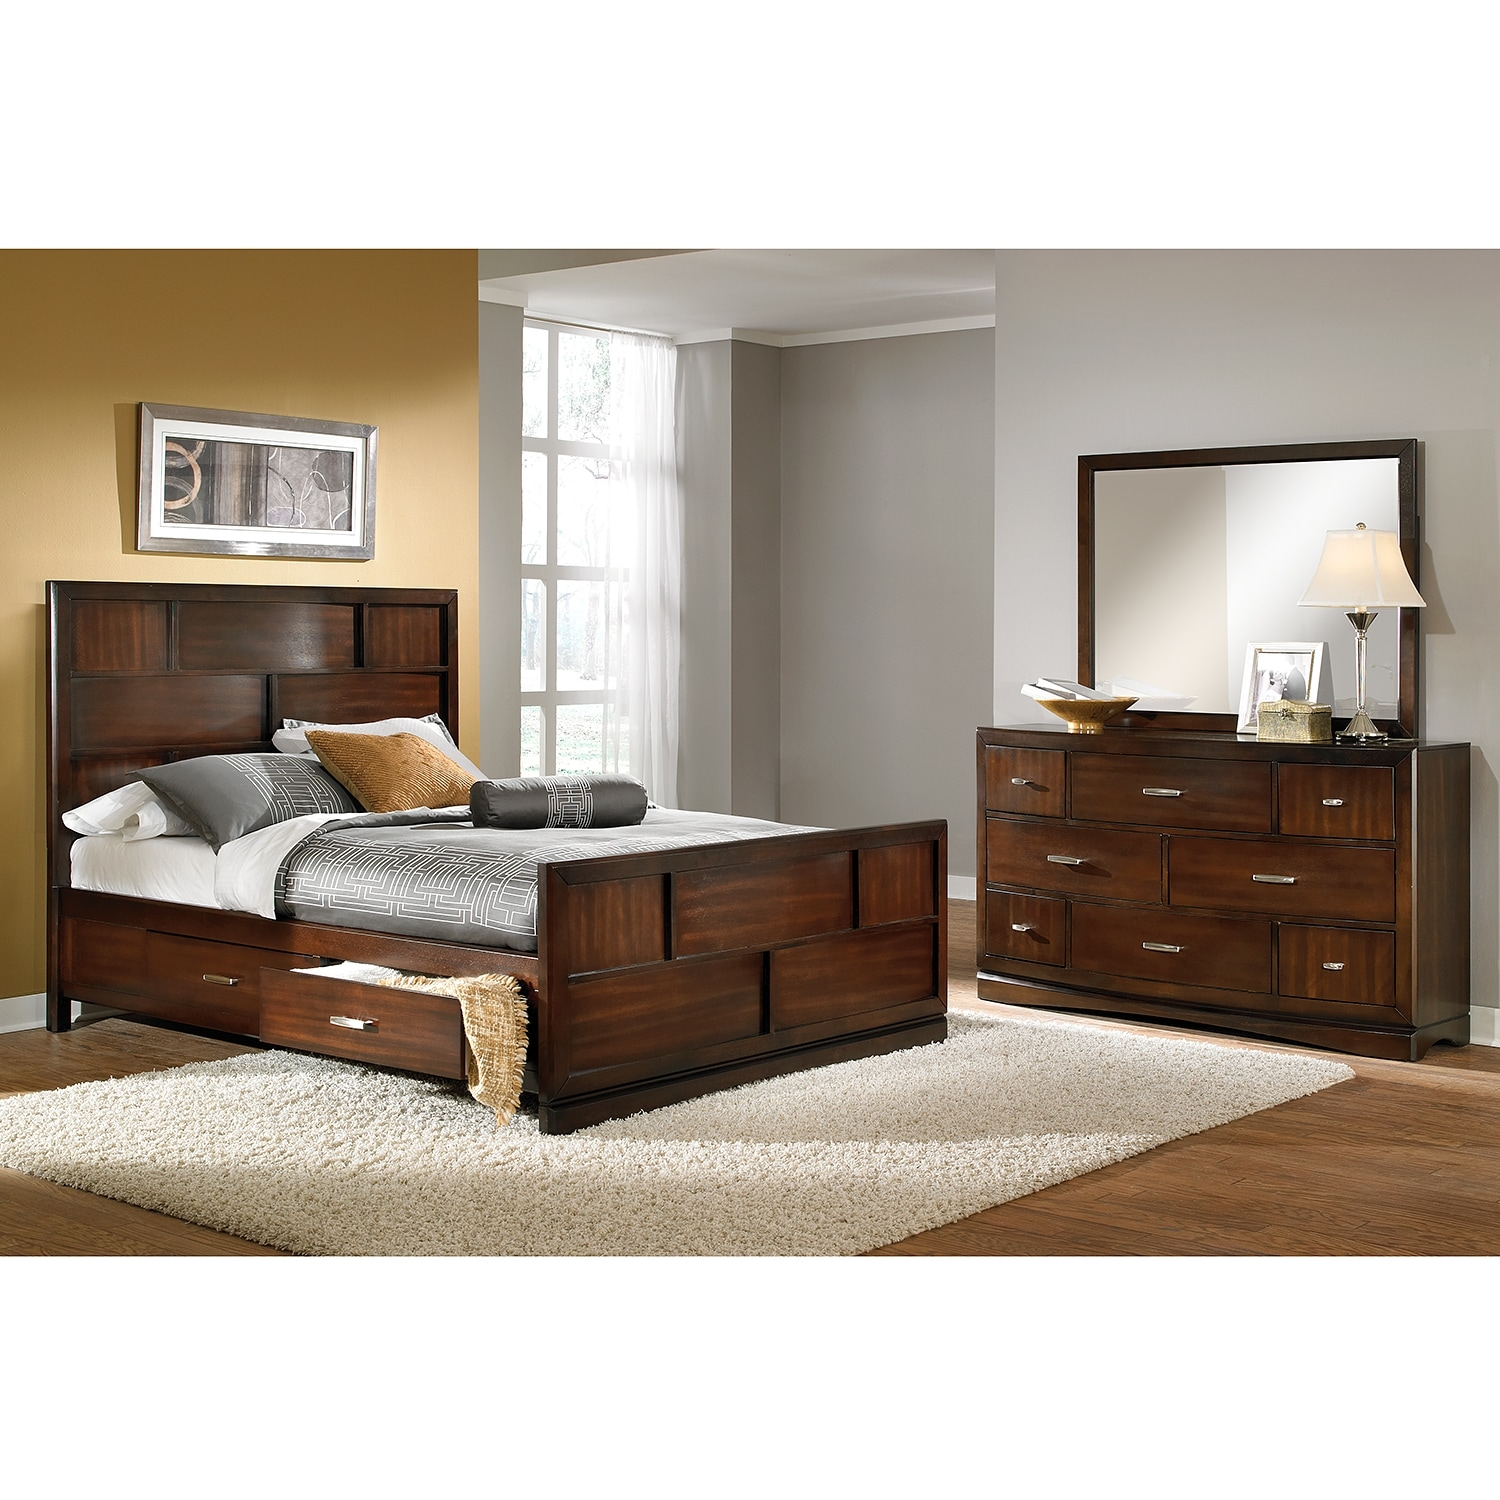 Toronto 5 Piece Queen Storage Bedroom Set Pecan Value City Furniture